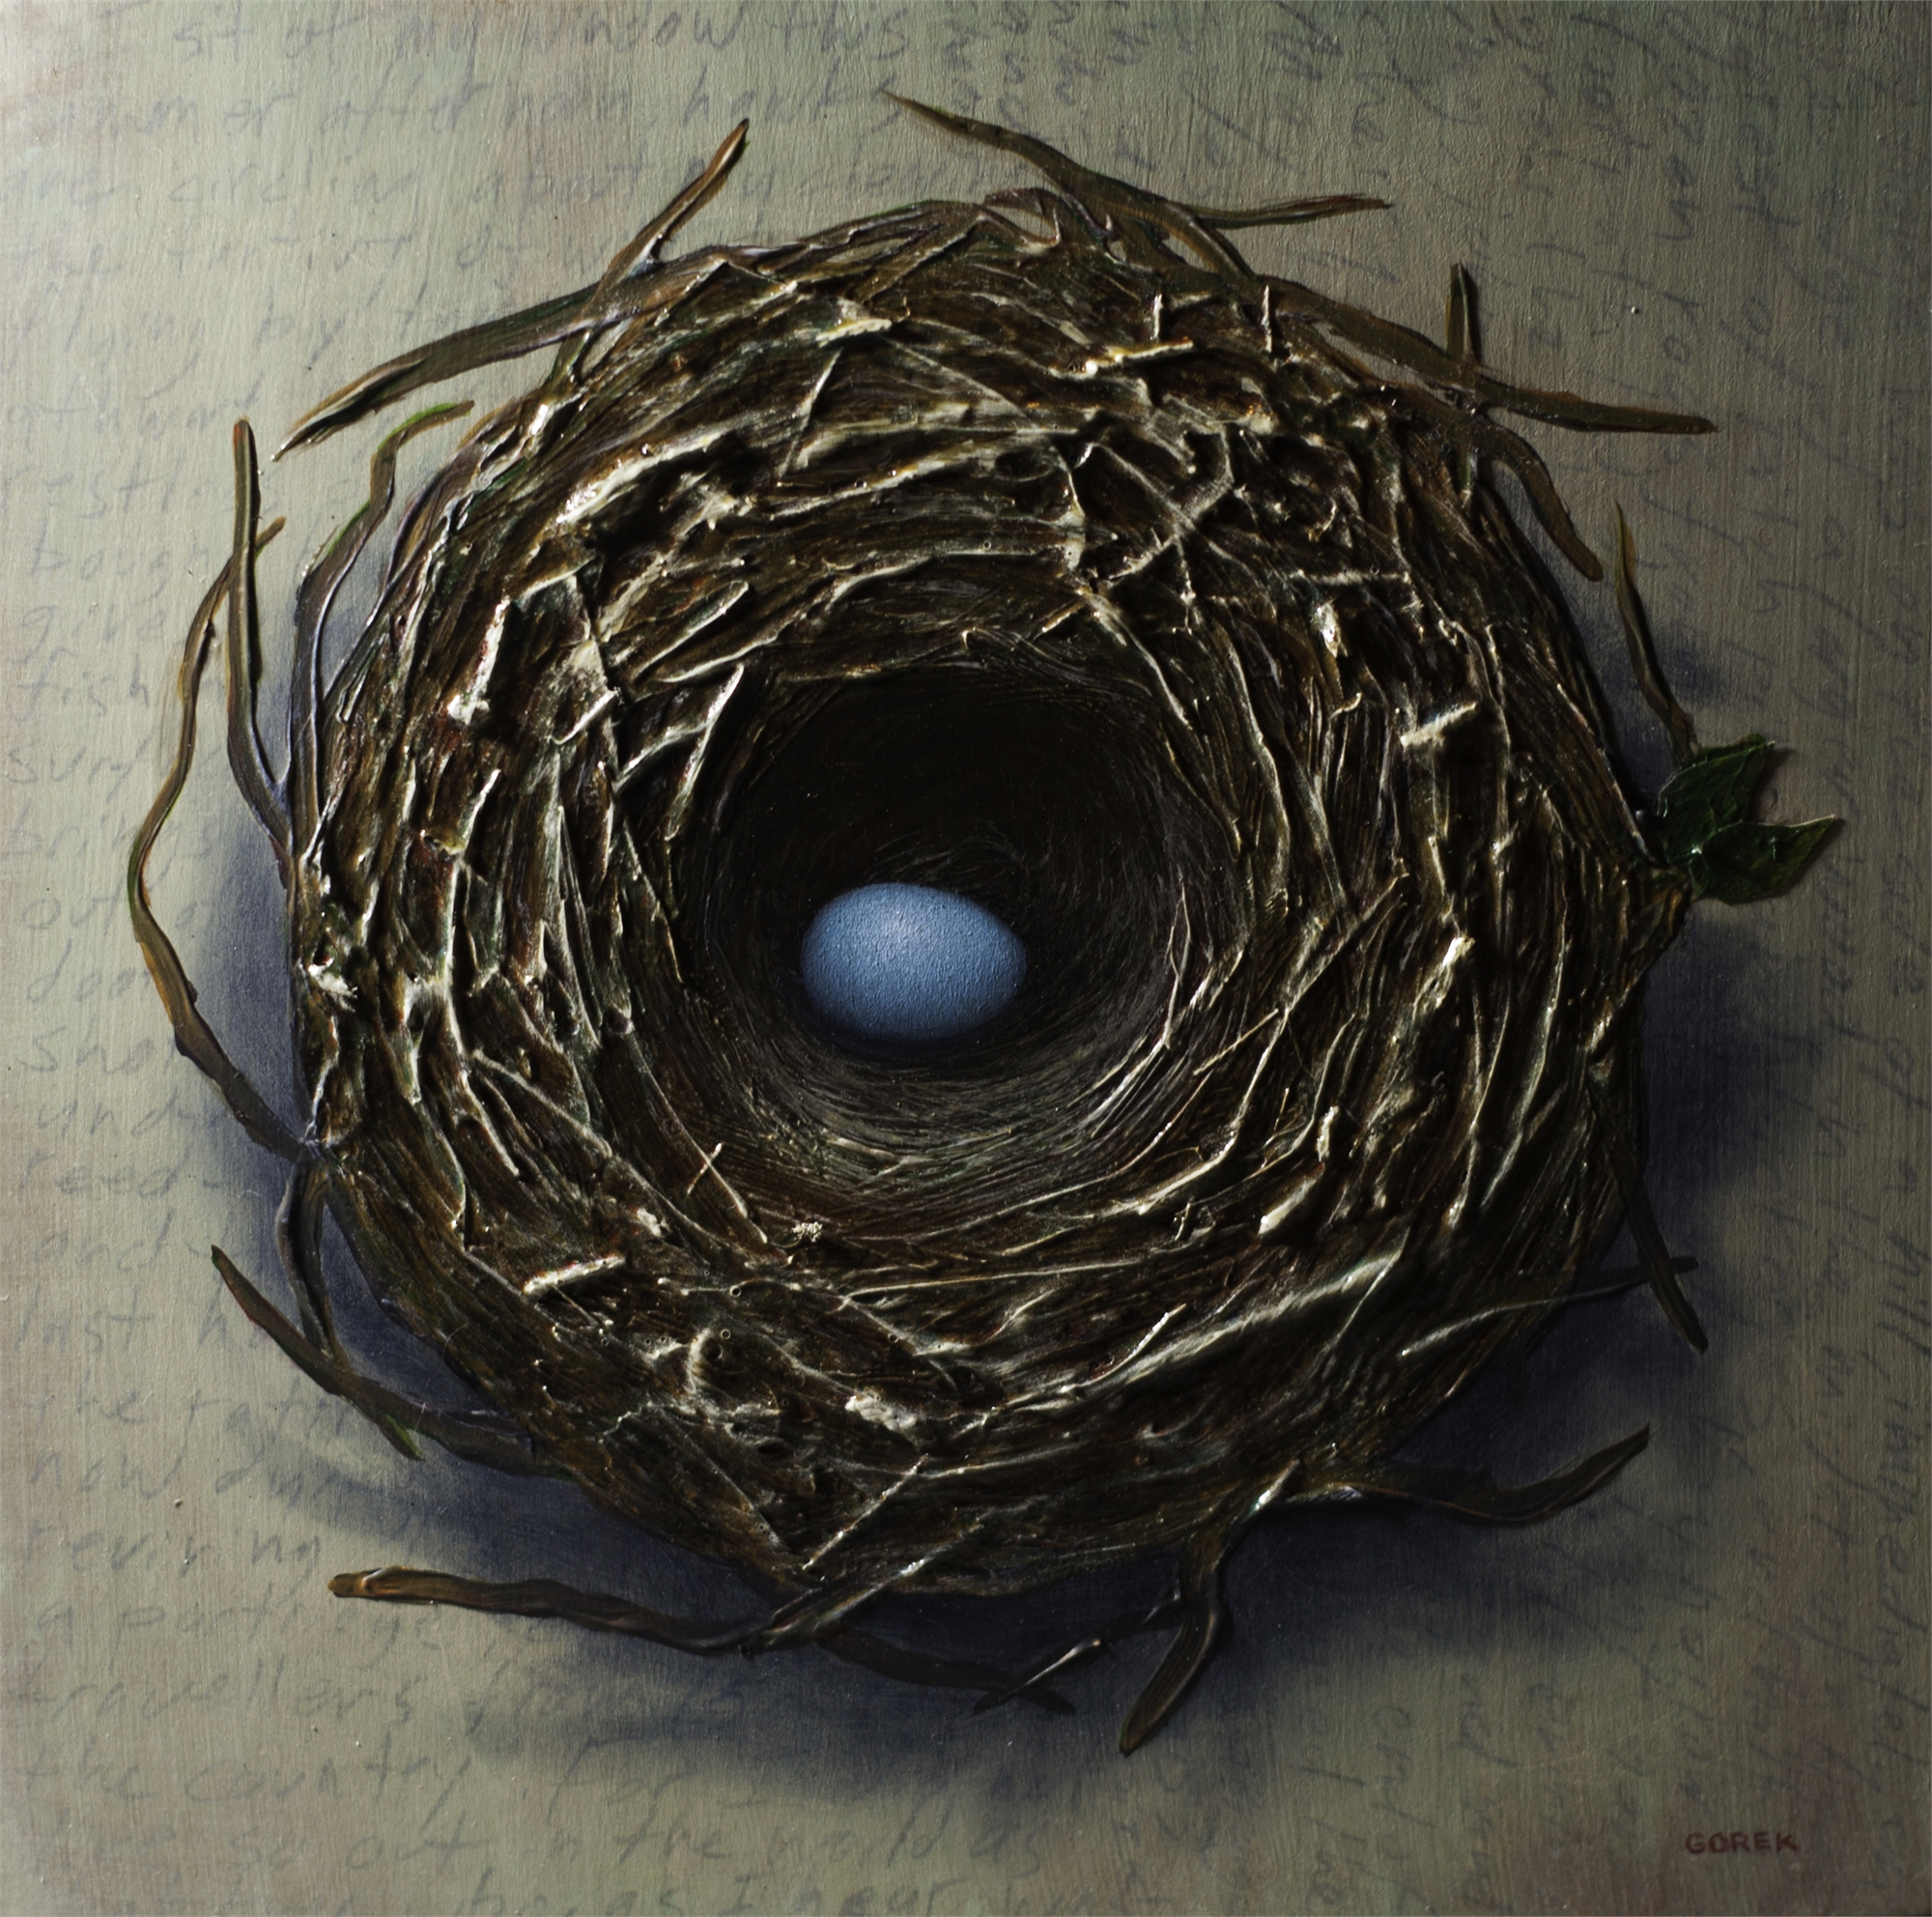 Bird's Nest, One Egg by Thane Gorek